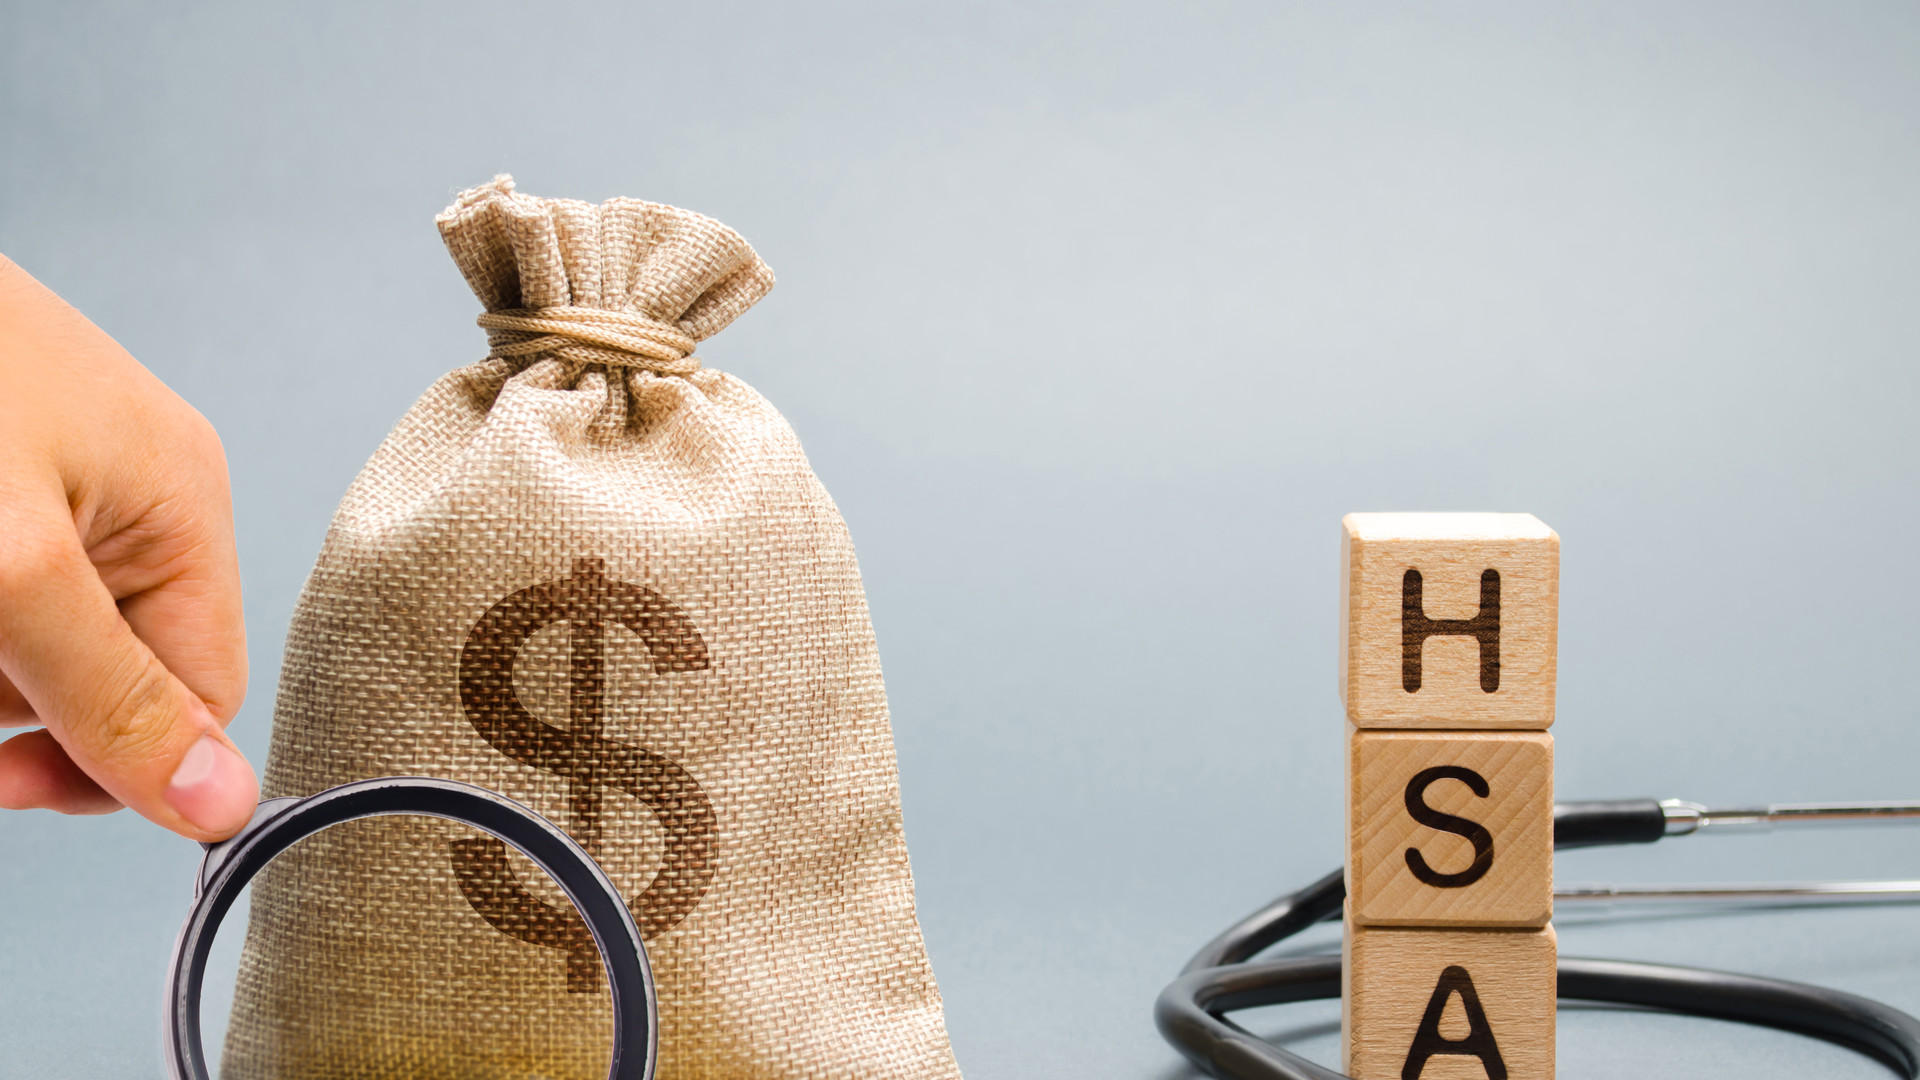 Wooden blocks with the word HSA and money bag with stethoscope. Health savings account. Health care. Health insurance. Investments. Tax-free medical expenses. Coins and dollar sign